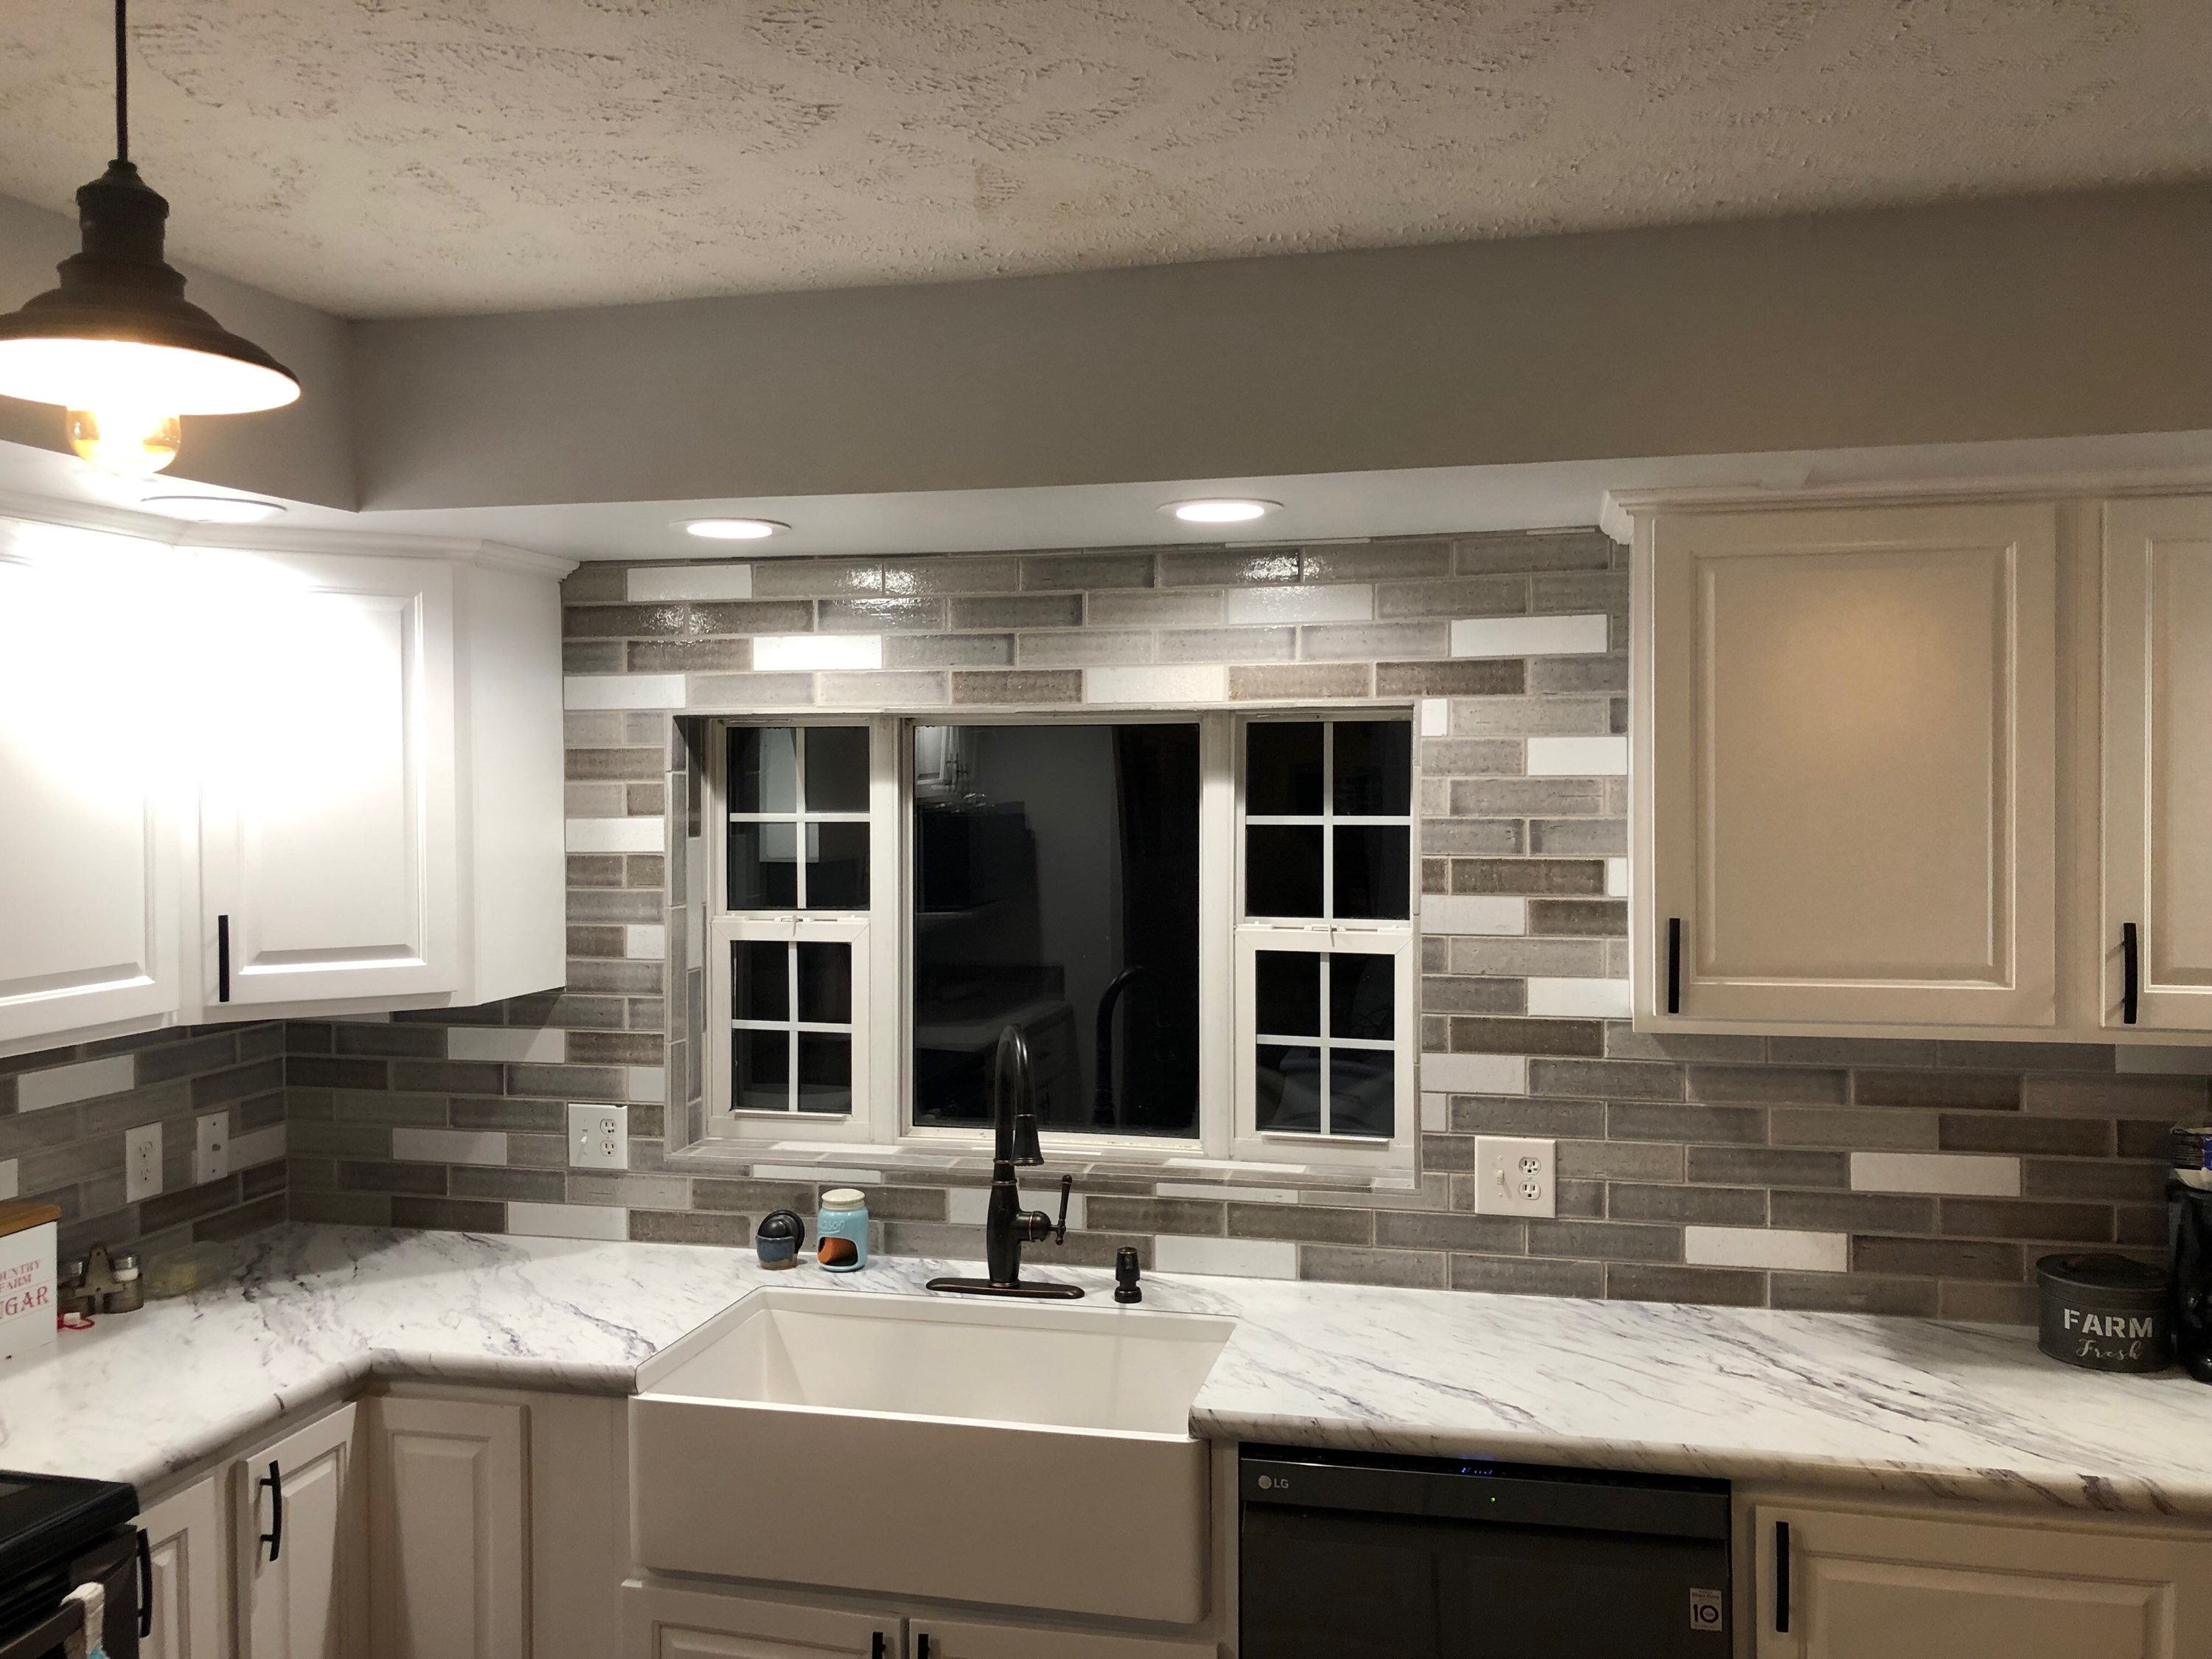 This customer was just as thrilled as we were with the way their backsplash turned out...beautiful!